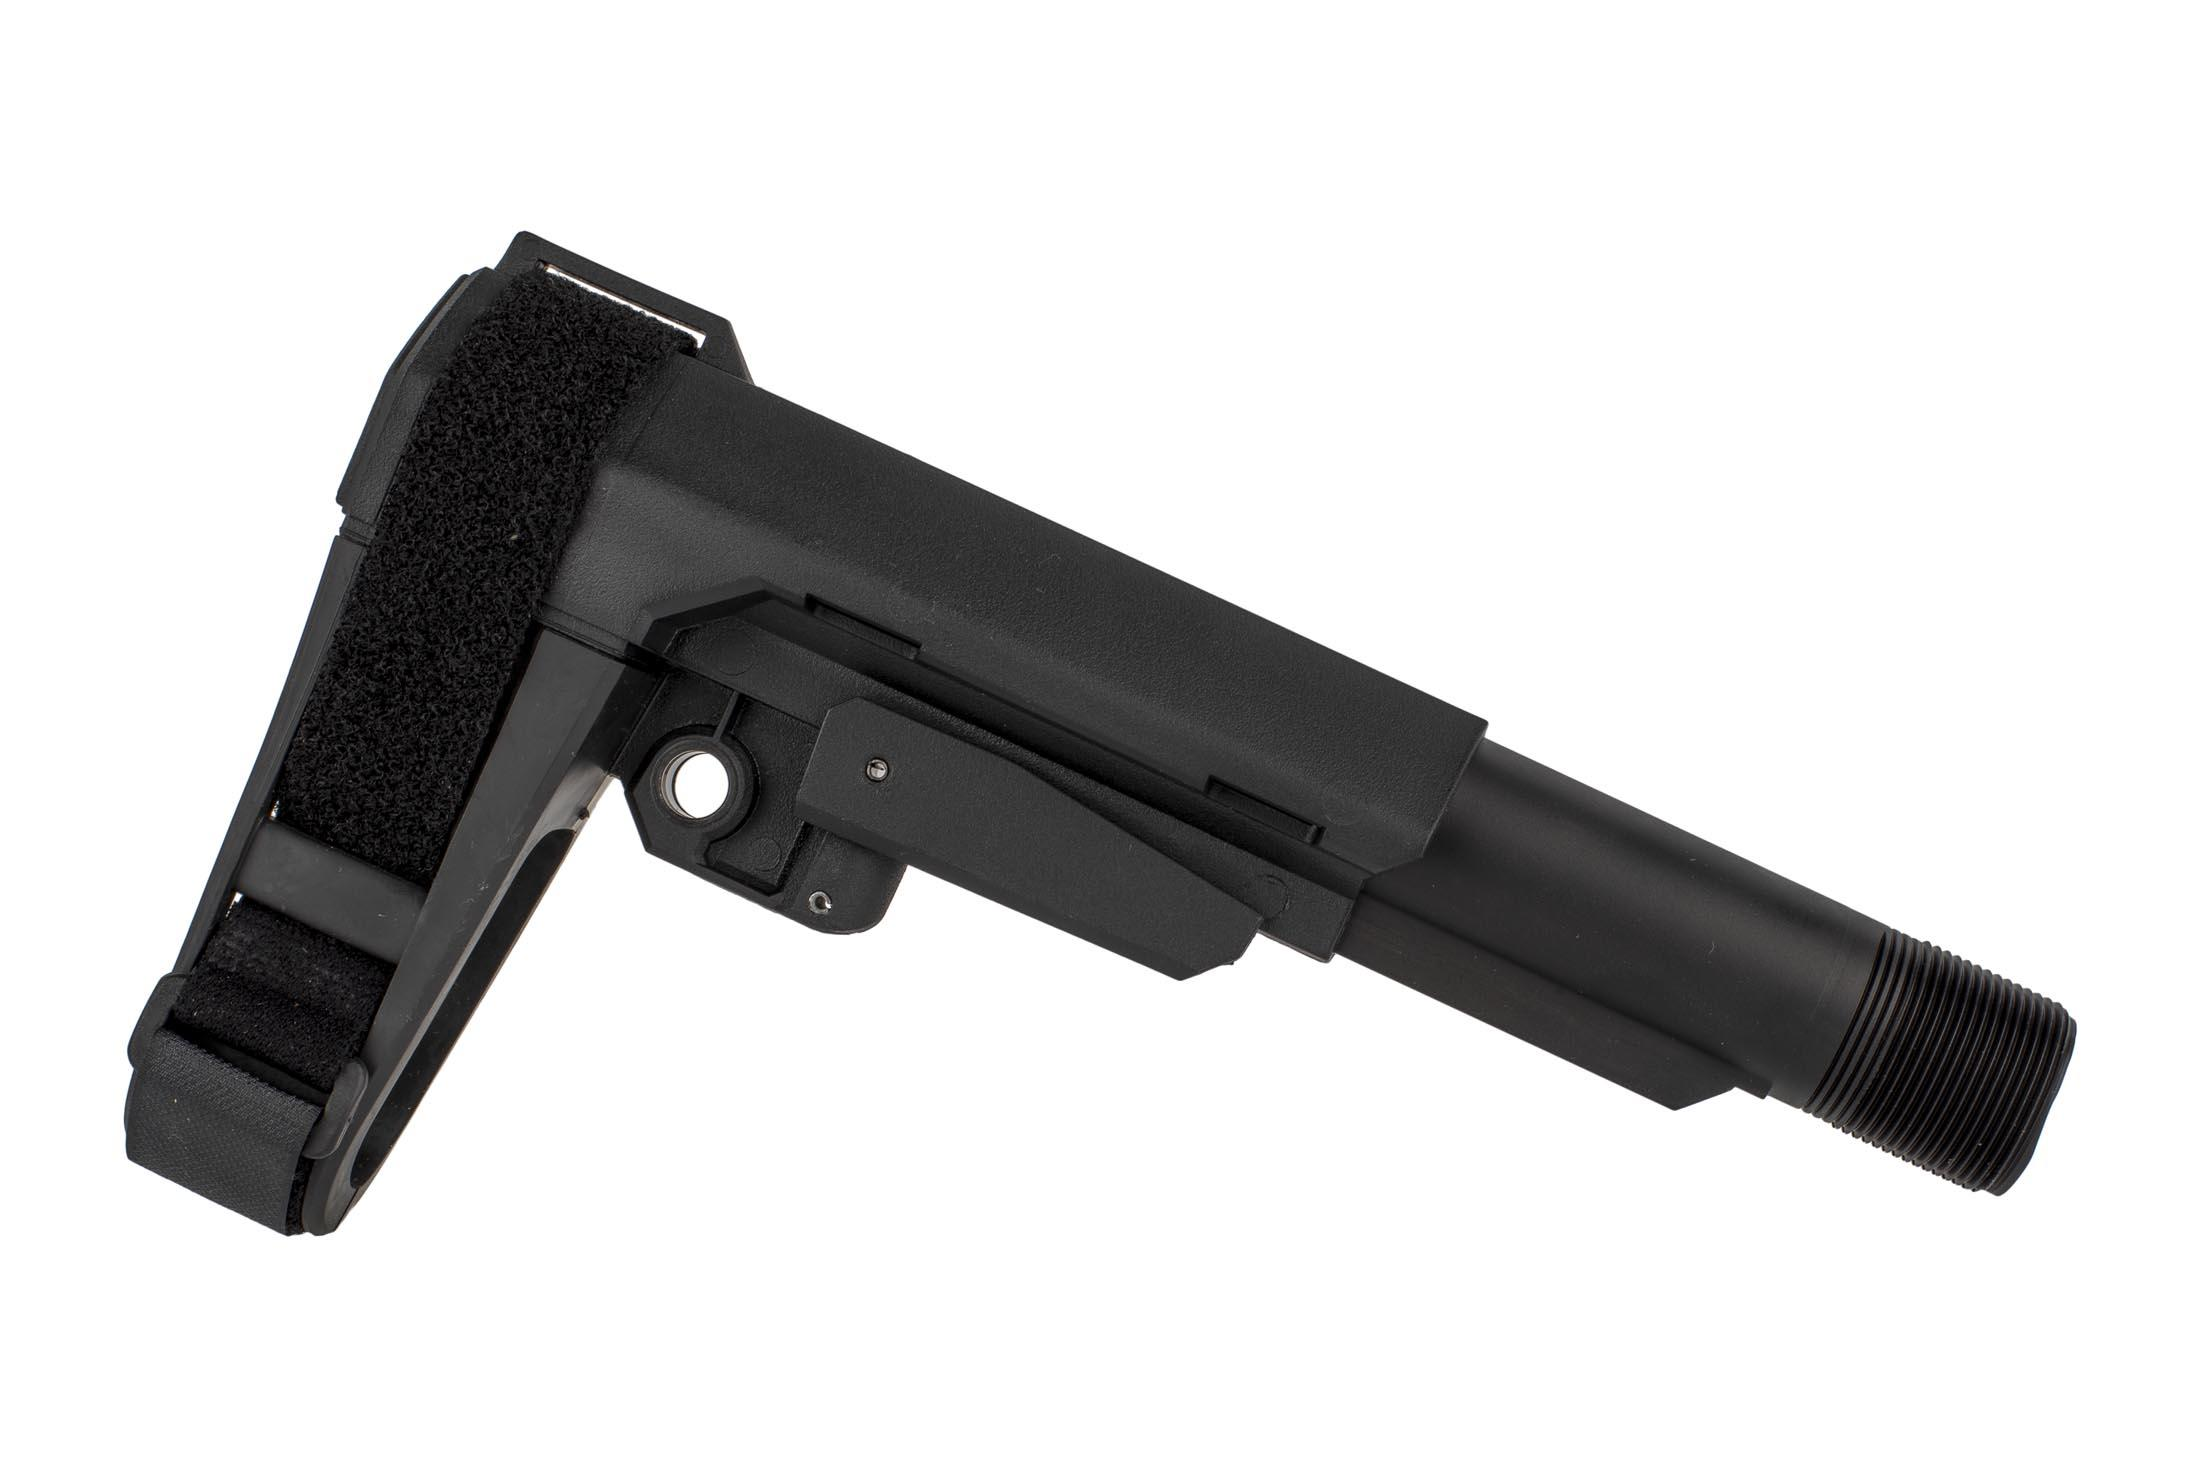 The CMMG RipBrace Kit is made from rigid polymer and comes with a standard carbine length buffer tube